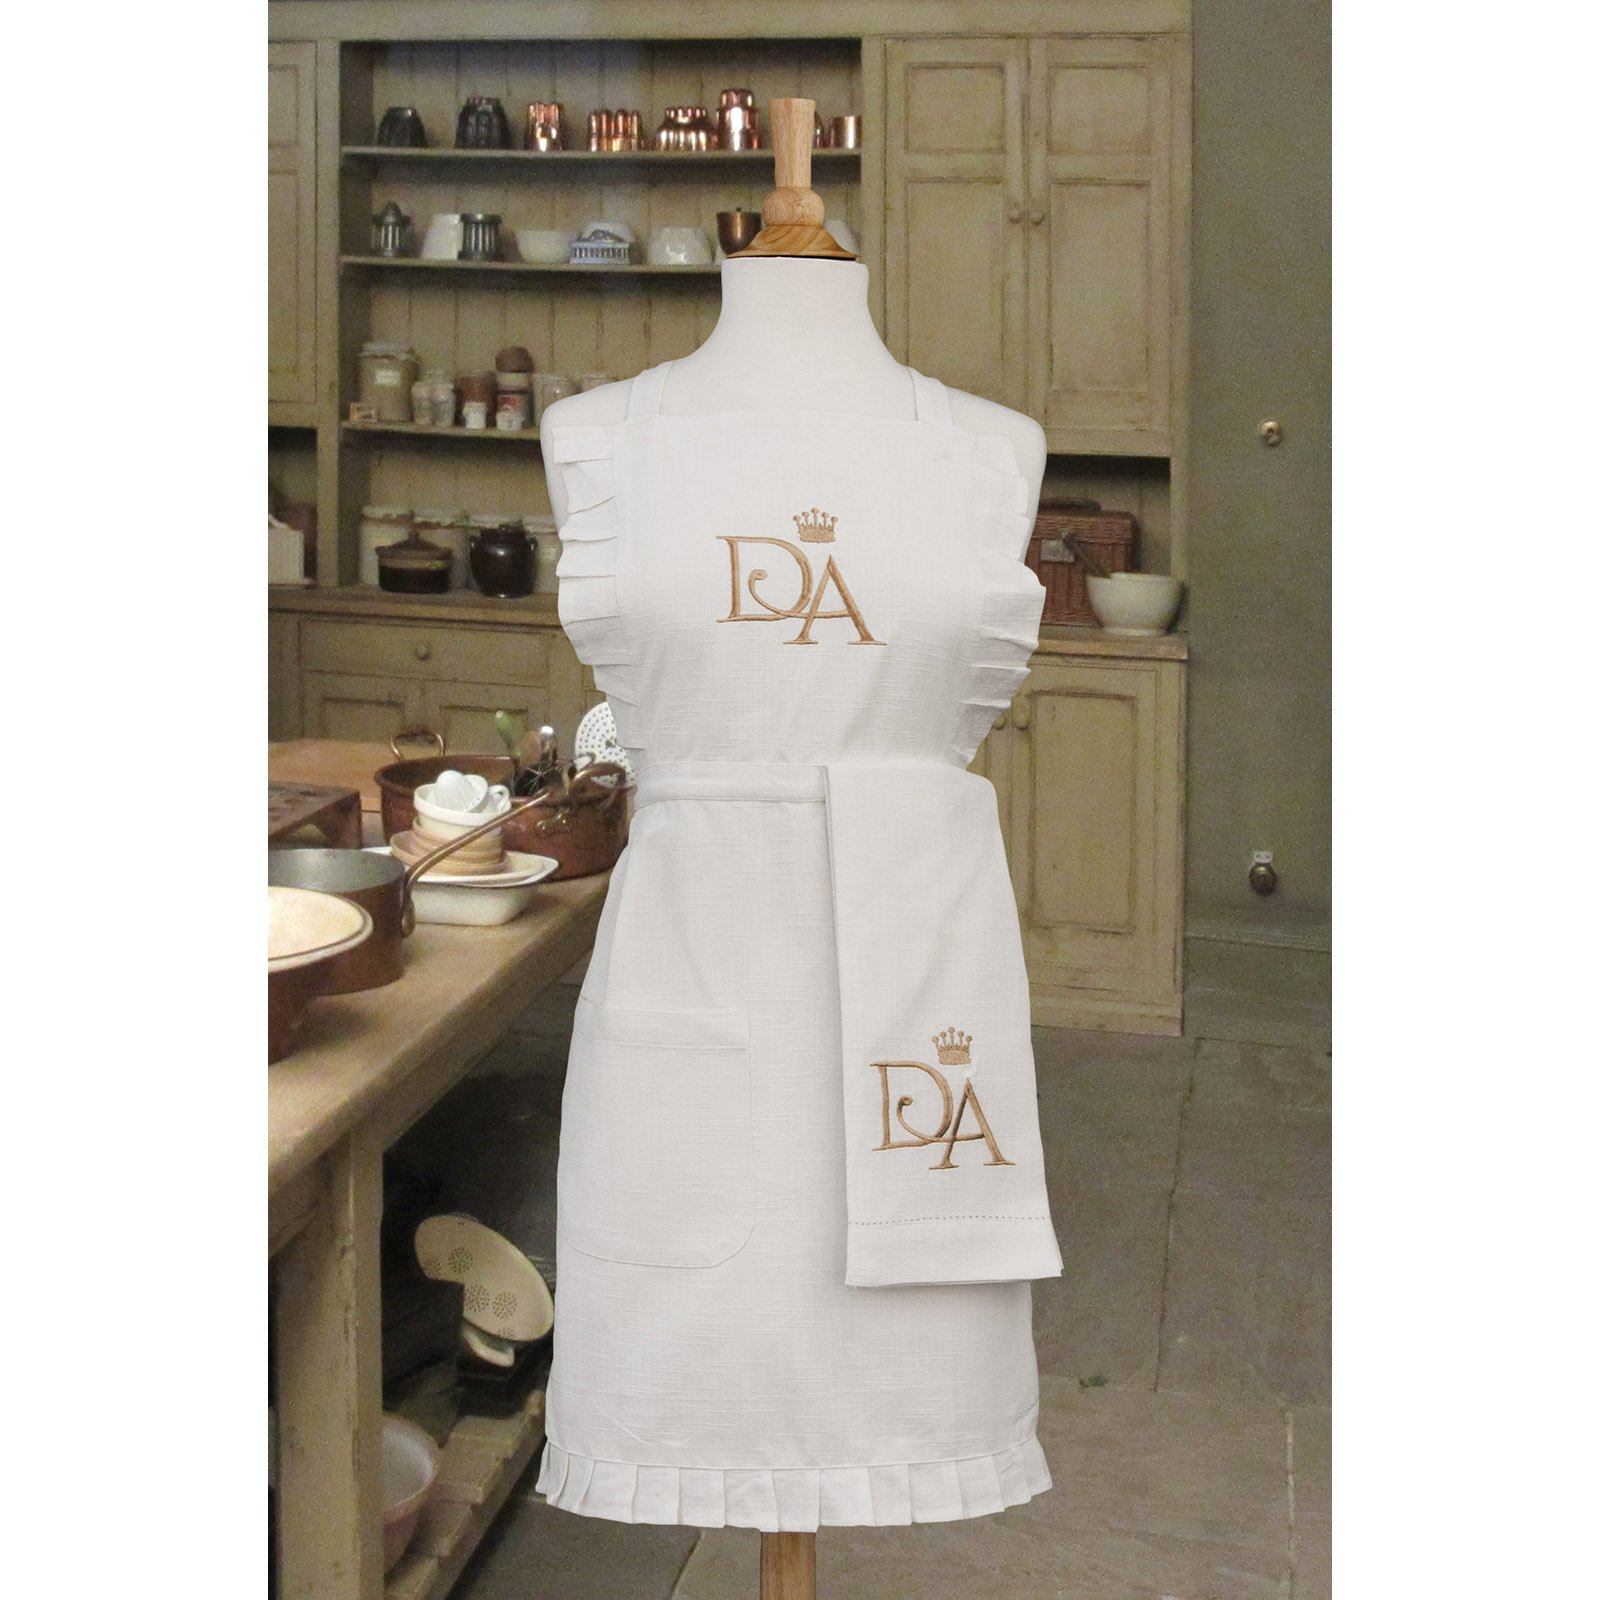 Downton Abbey by Heritage Lace Downton House 27 x 32 in. Apron